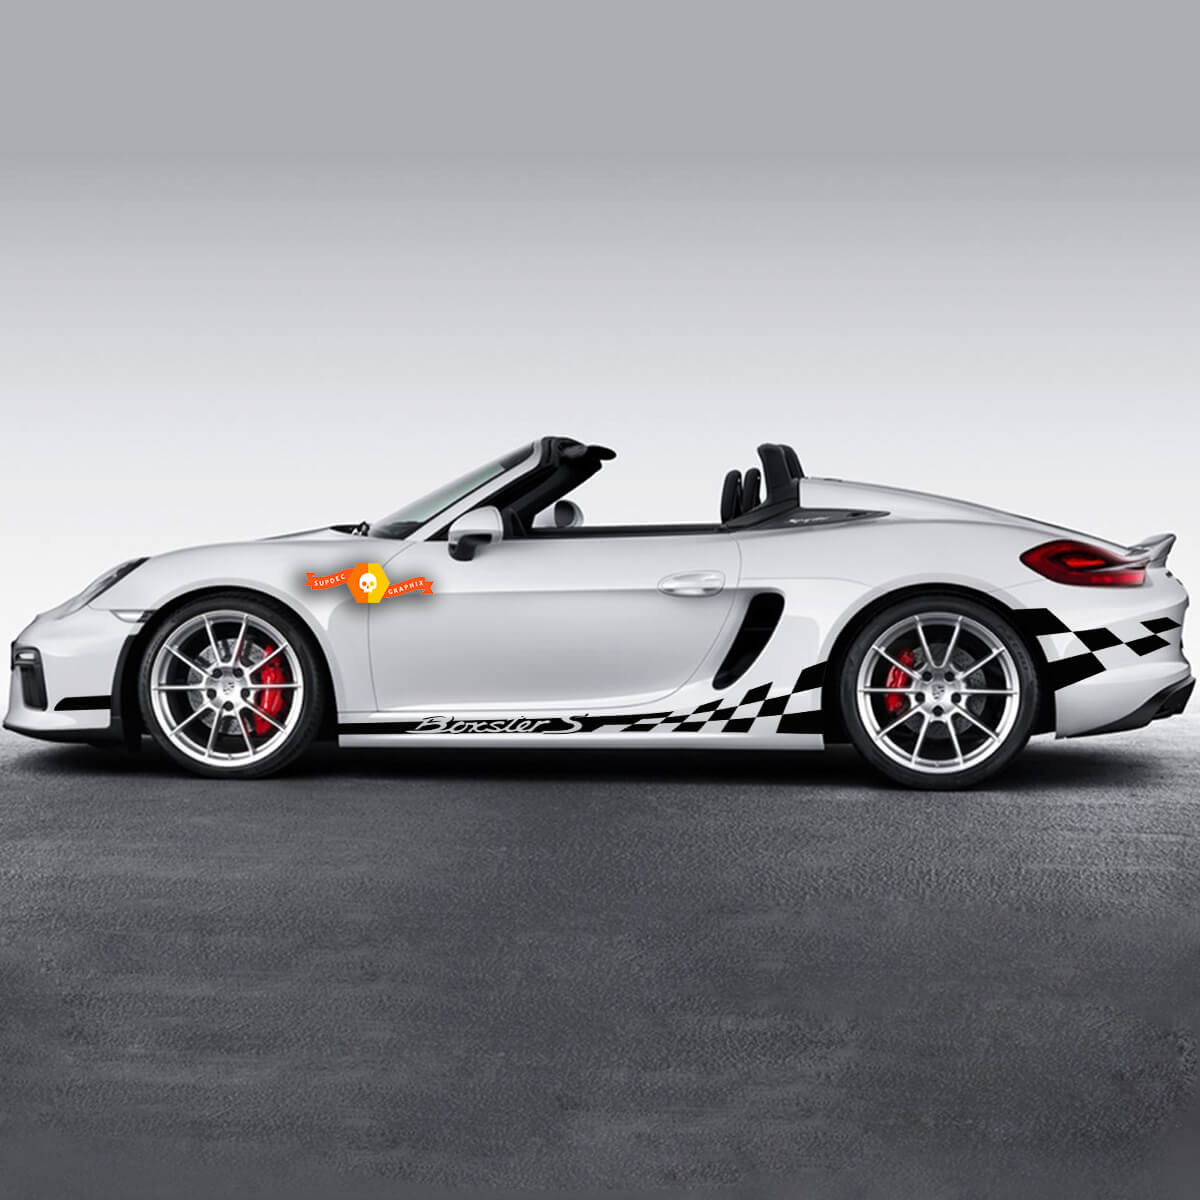 Porsche Rocker Panel Сheckered Flag Side Stripes Graphics Decal For Boxster S Or Any Porsche